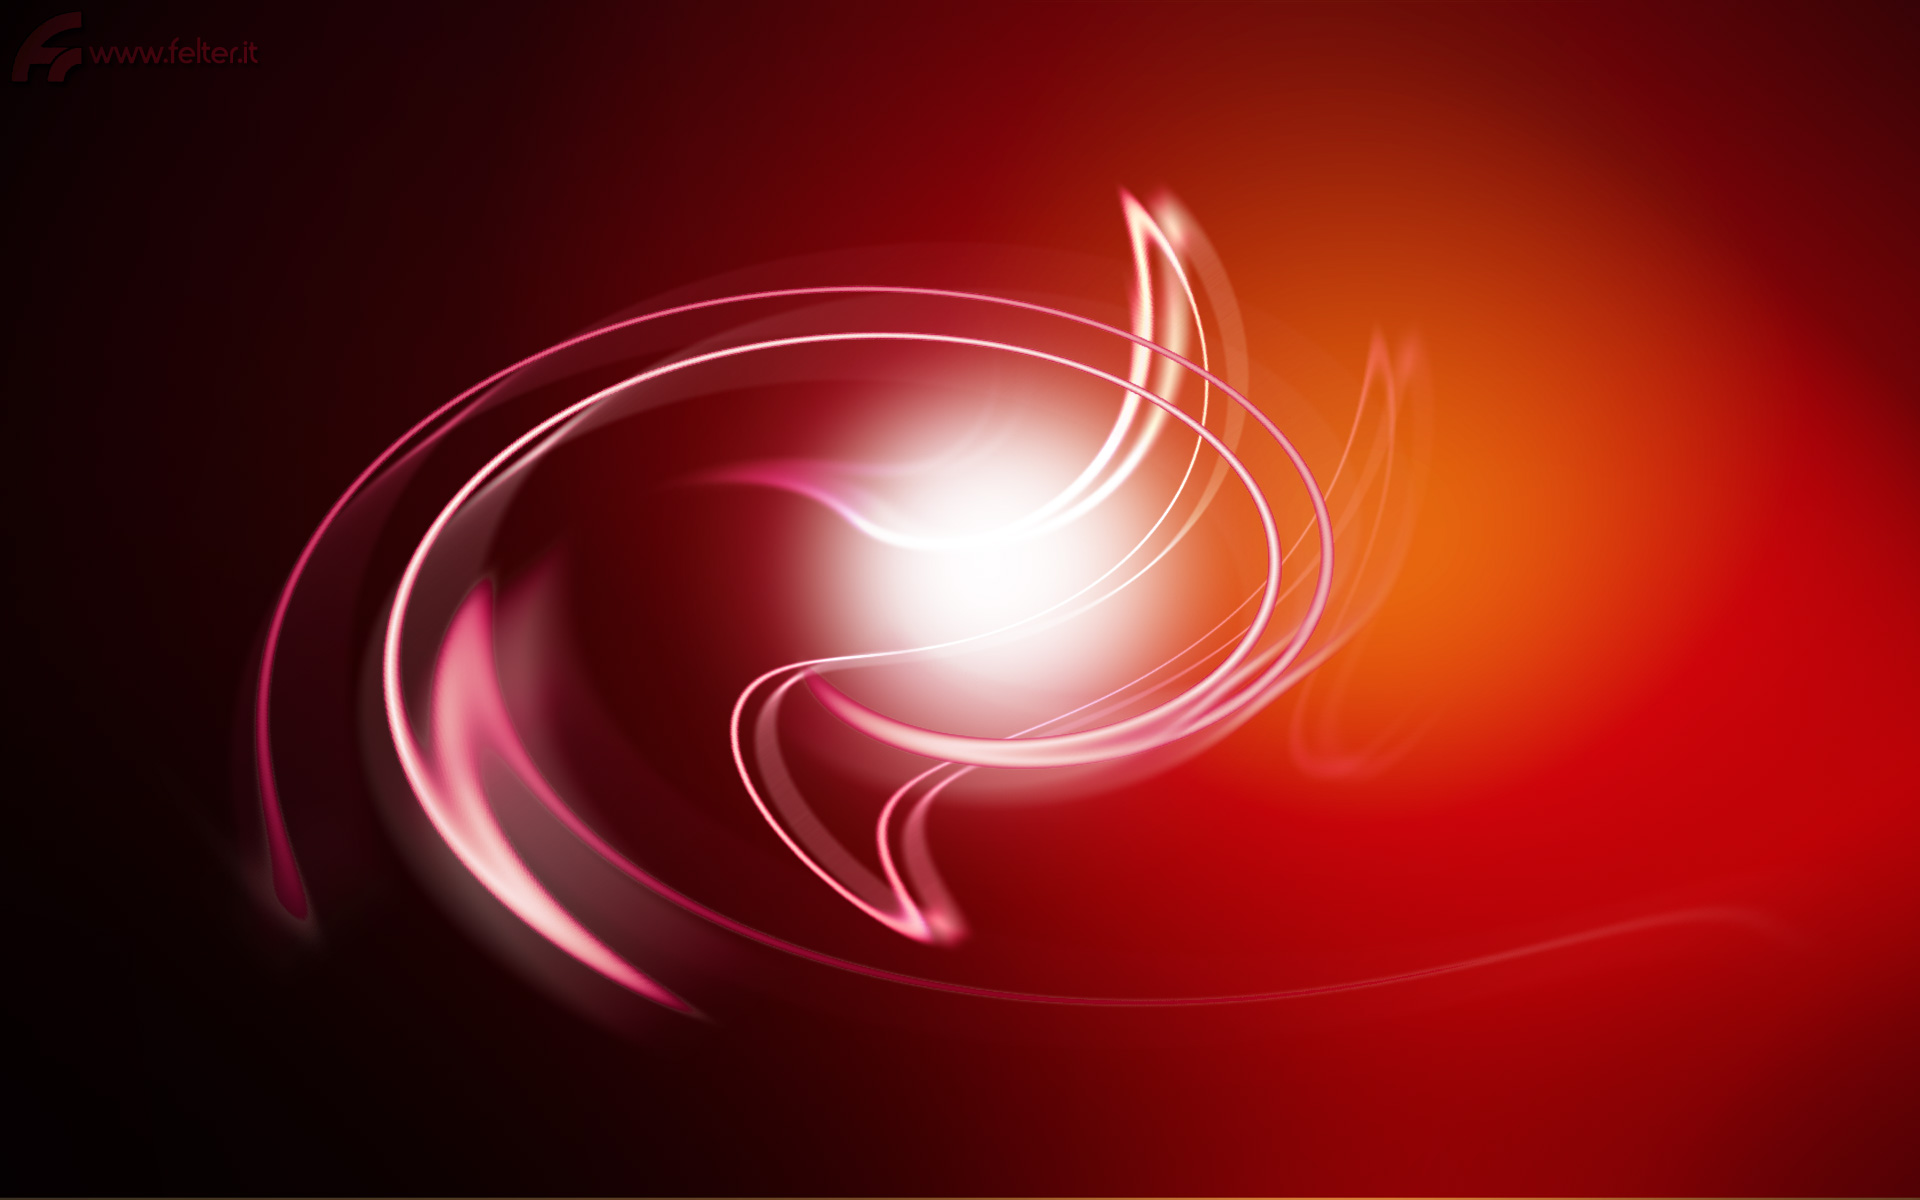 White Light Art Red Color HD Wallpaper Background Image ...